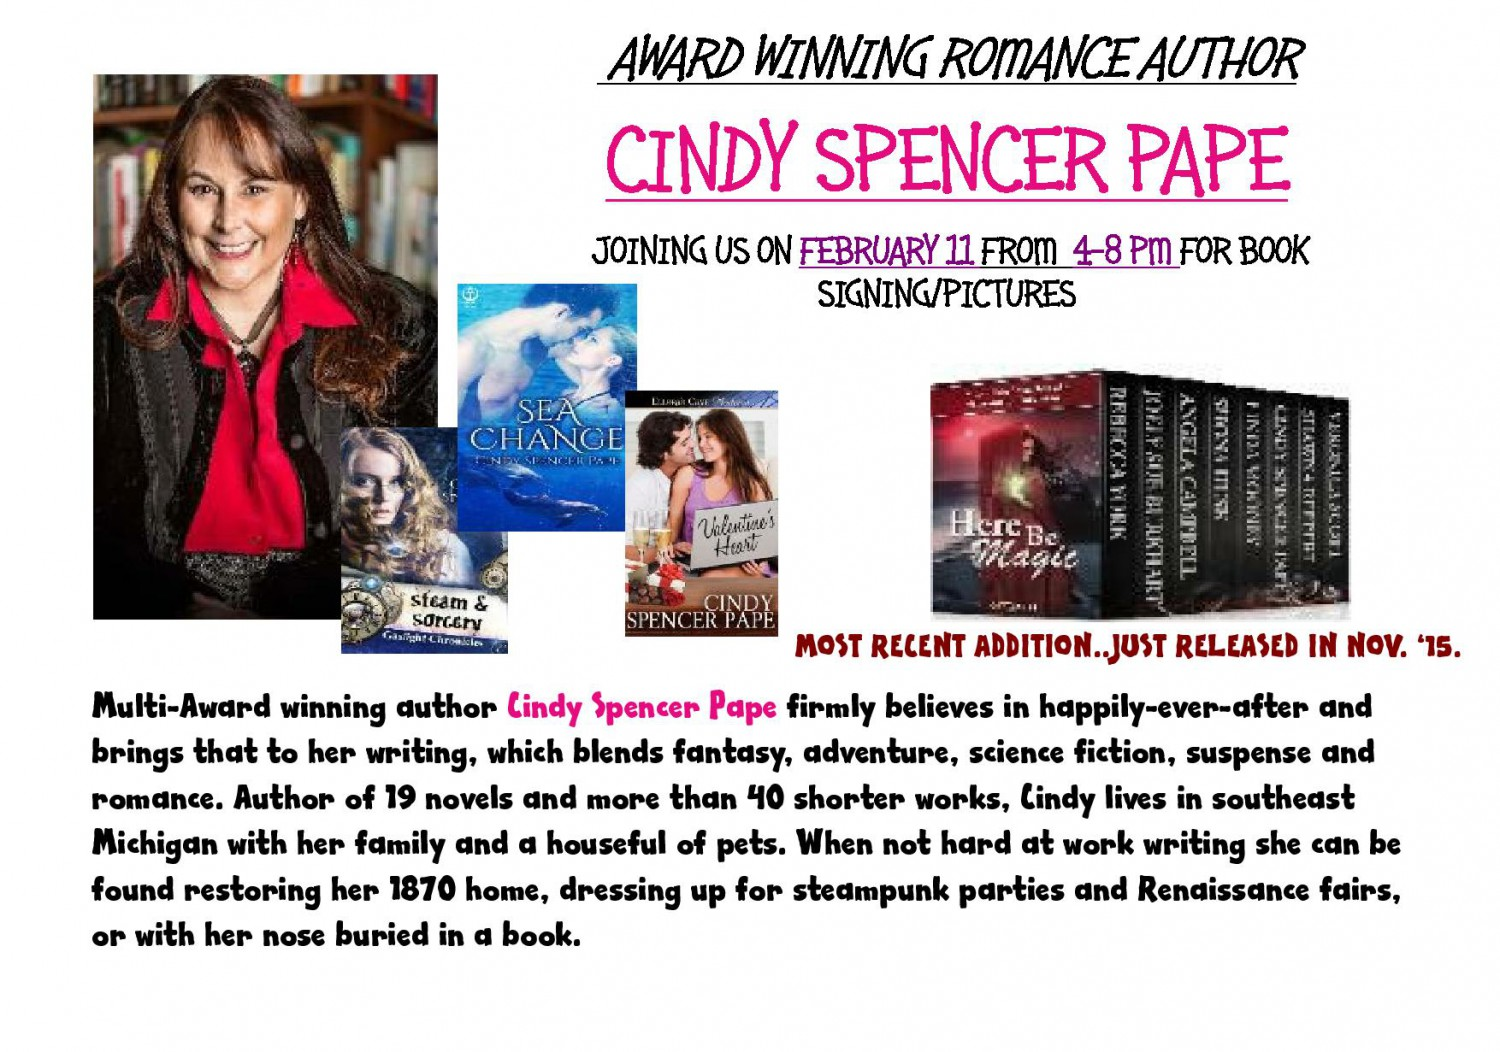 cropped-cindy-spencer-pape-promo-artwork-for-fb-page-001.jpg